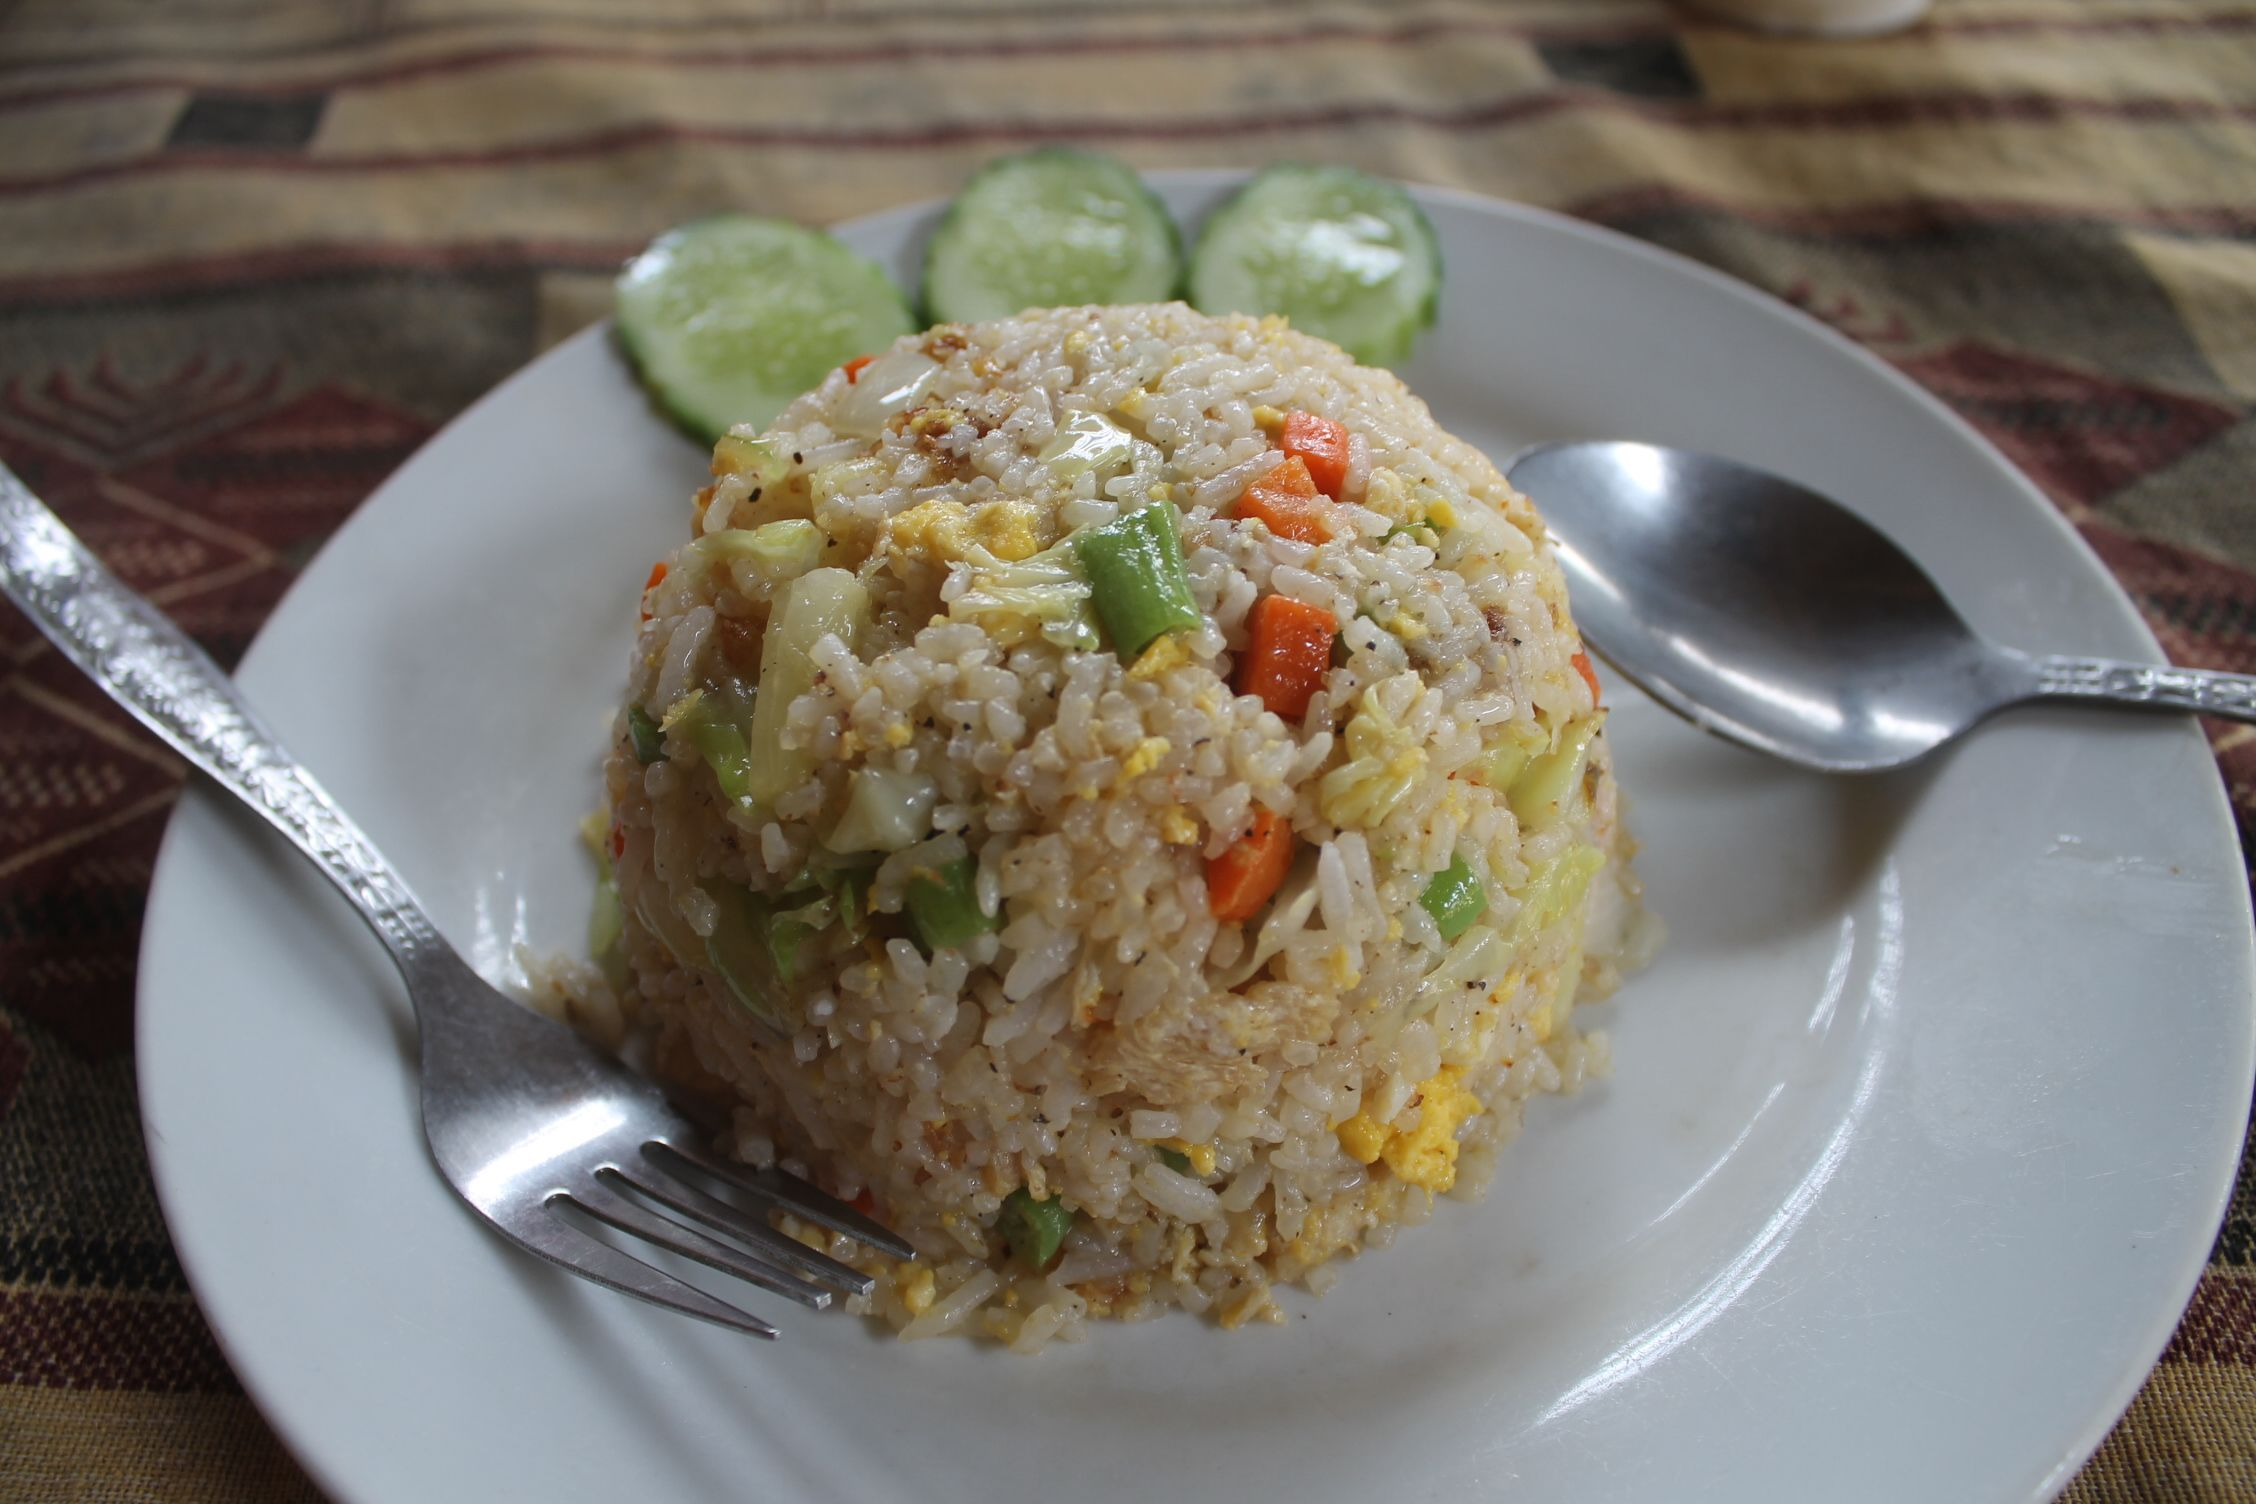 Fried Rice (Arroz frito) con verduras y piña